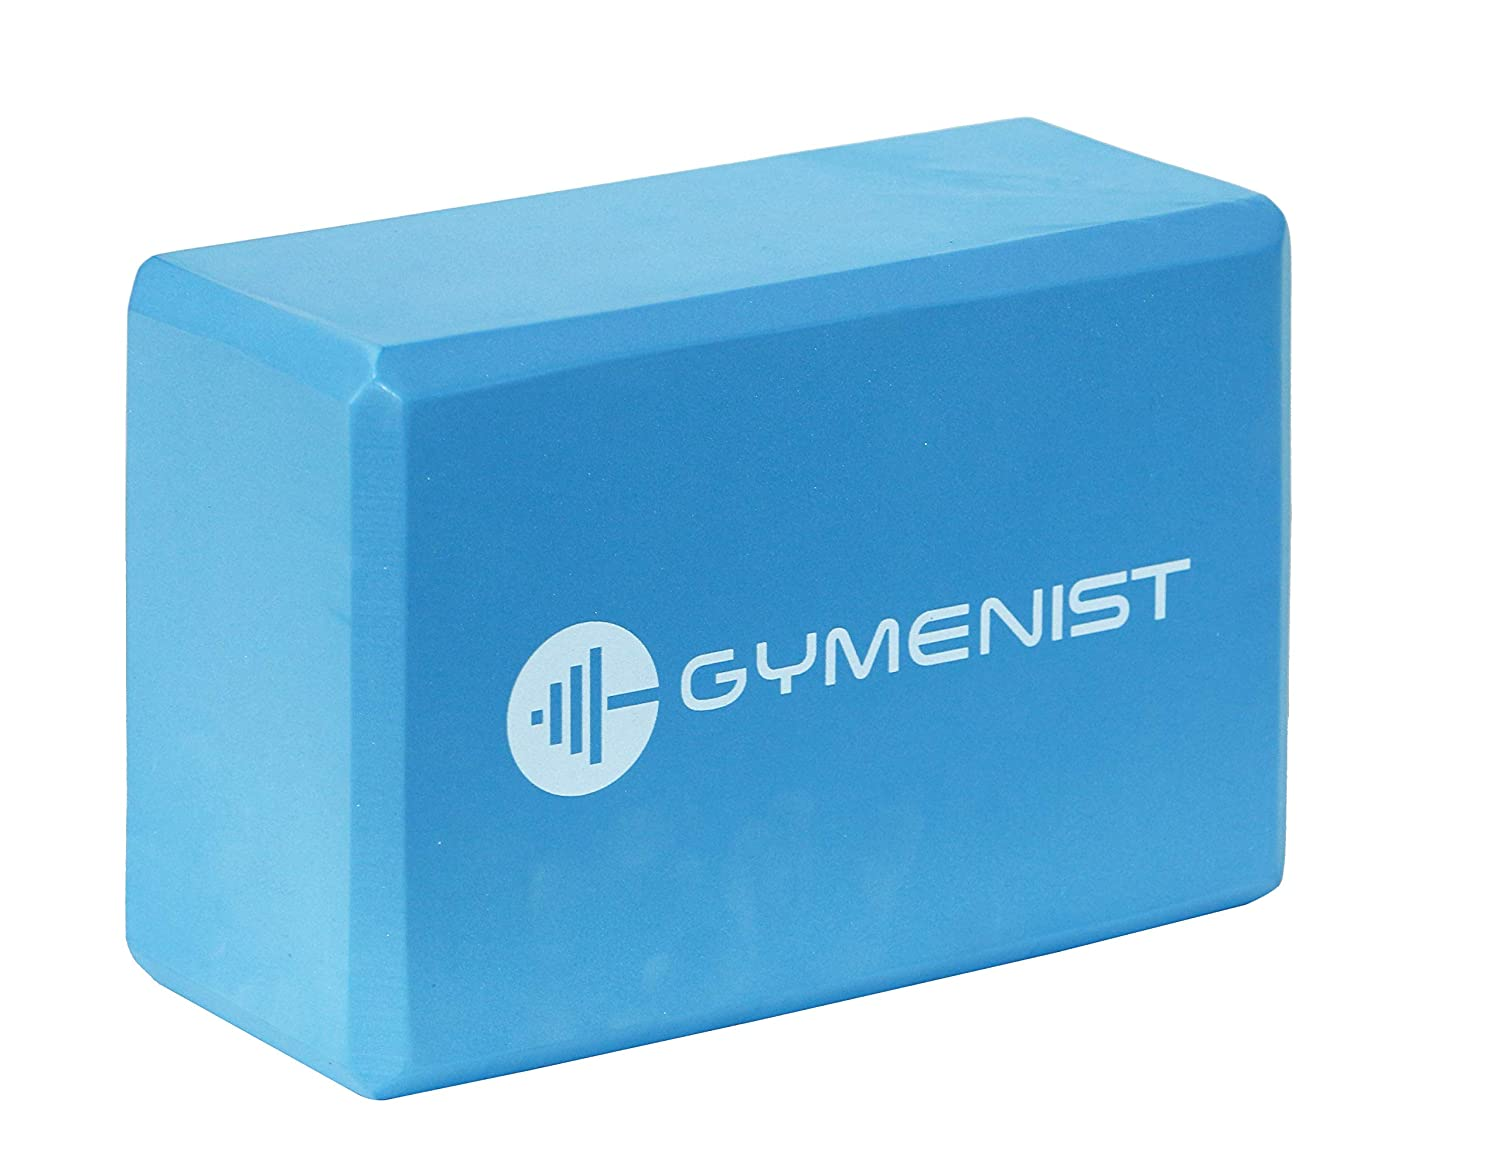 GYMENIST Yoga Blocks High Density EVA Foam Block Provides Support and Deepen Poses Improves Strength,Balance and Flexibility Ideal for Workout Fitness /& Gym